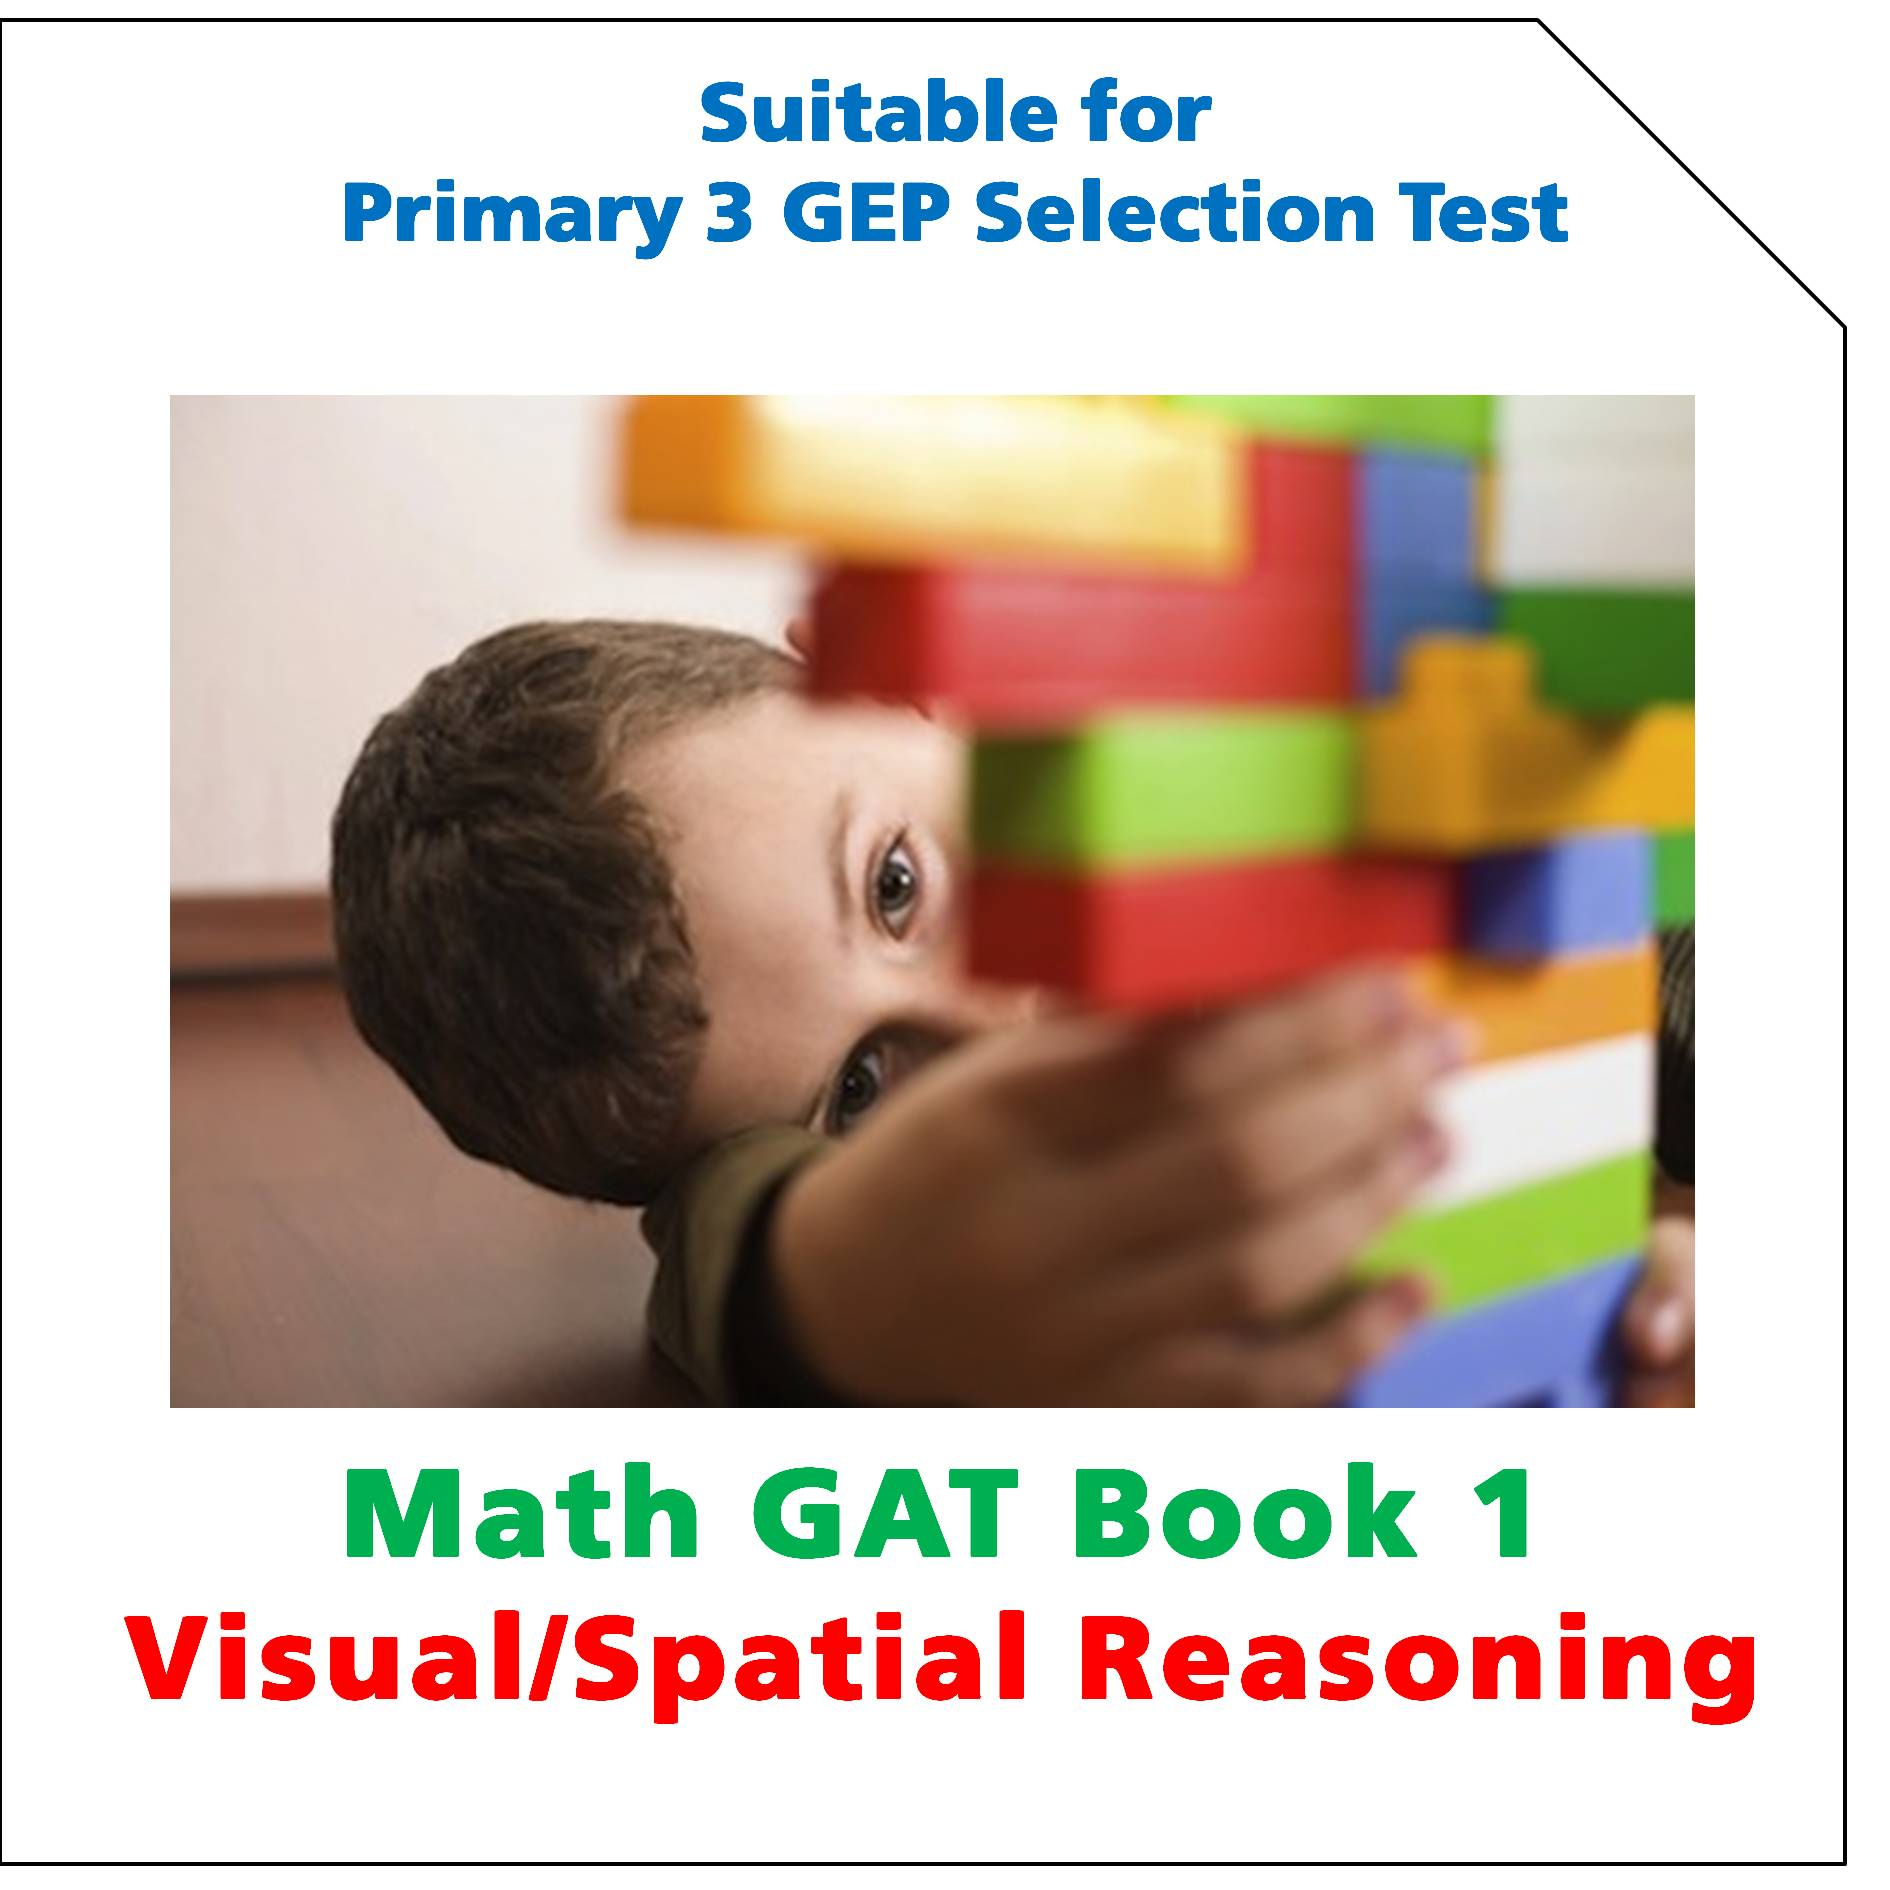 P3 Math Gat Book 1 Visual Spatial Reasoning Setquestions